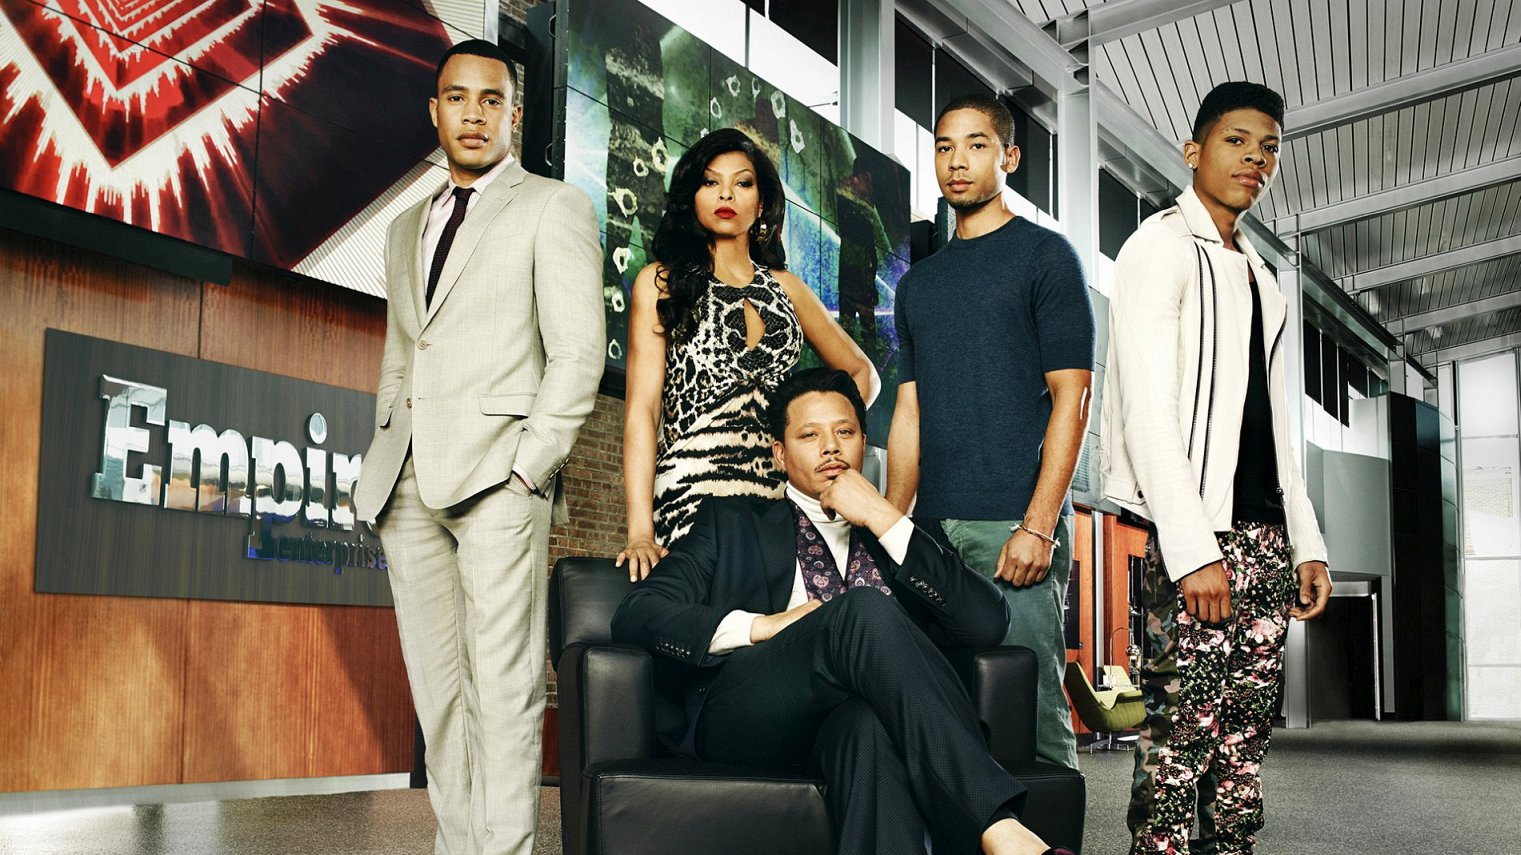 Empire season 4 episode 5 watch online